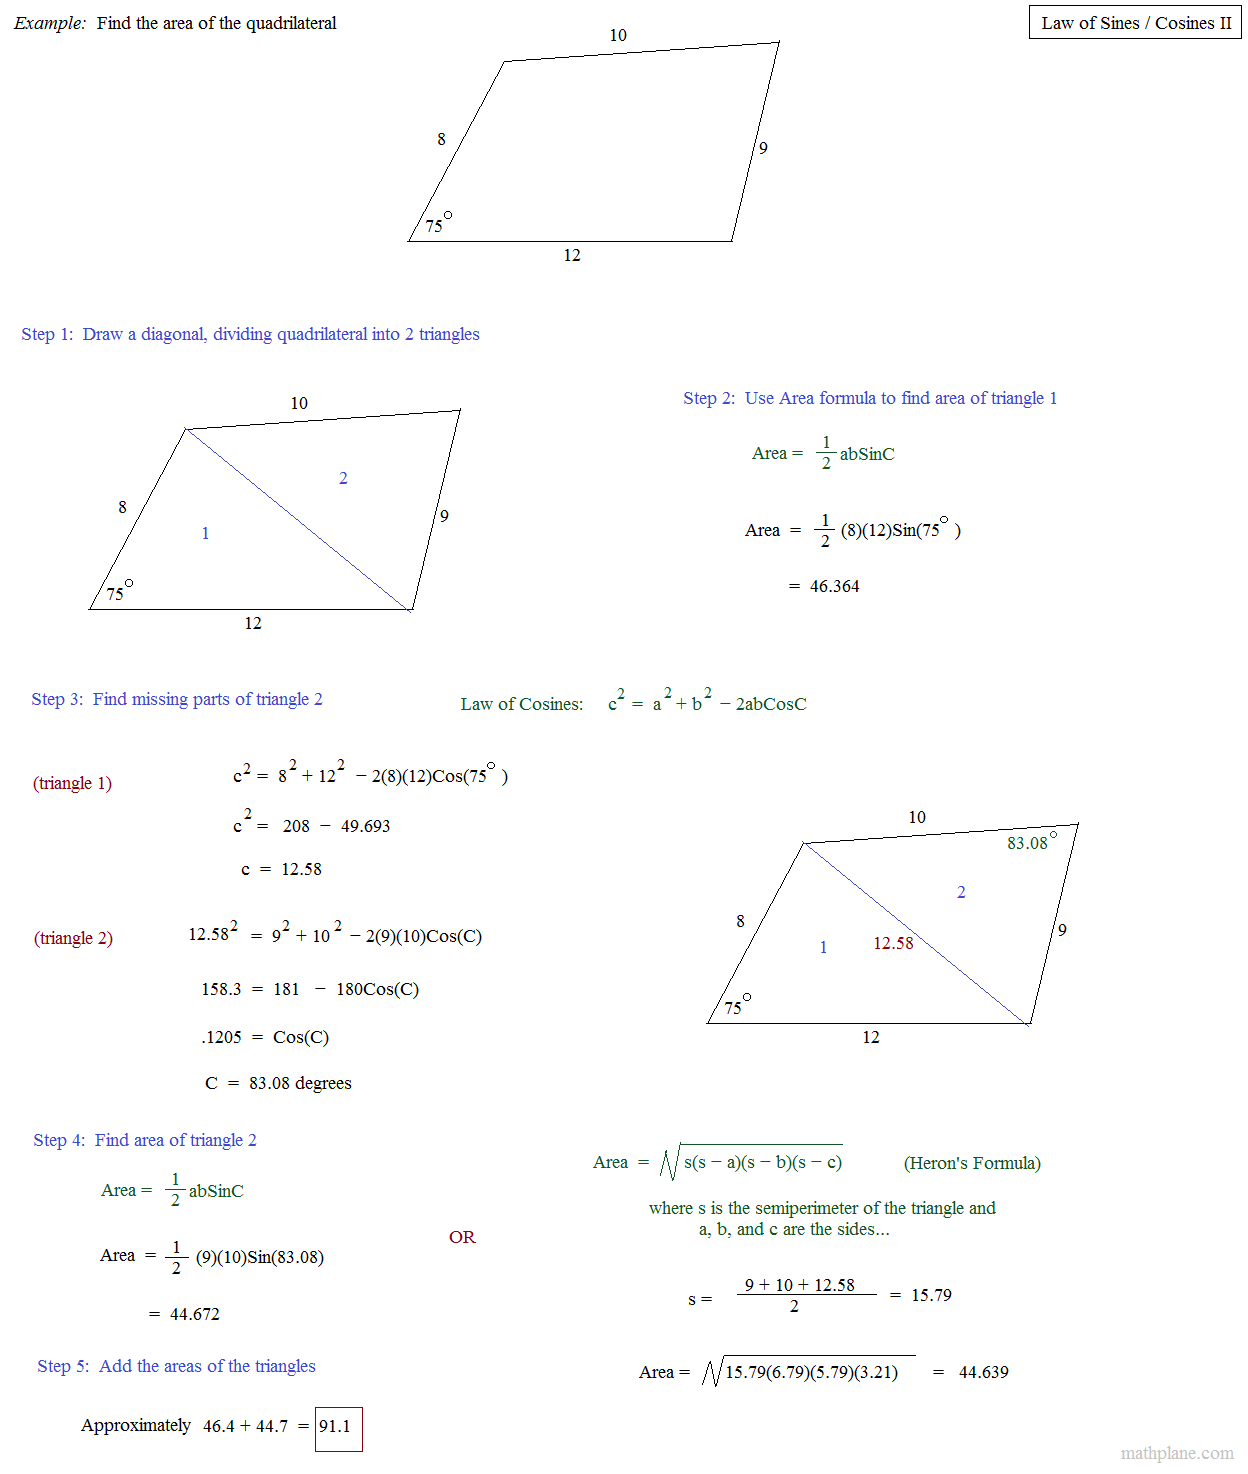 Math Plane - Law of Sines and Cosines II